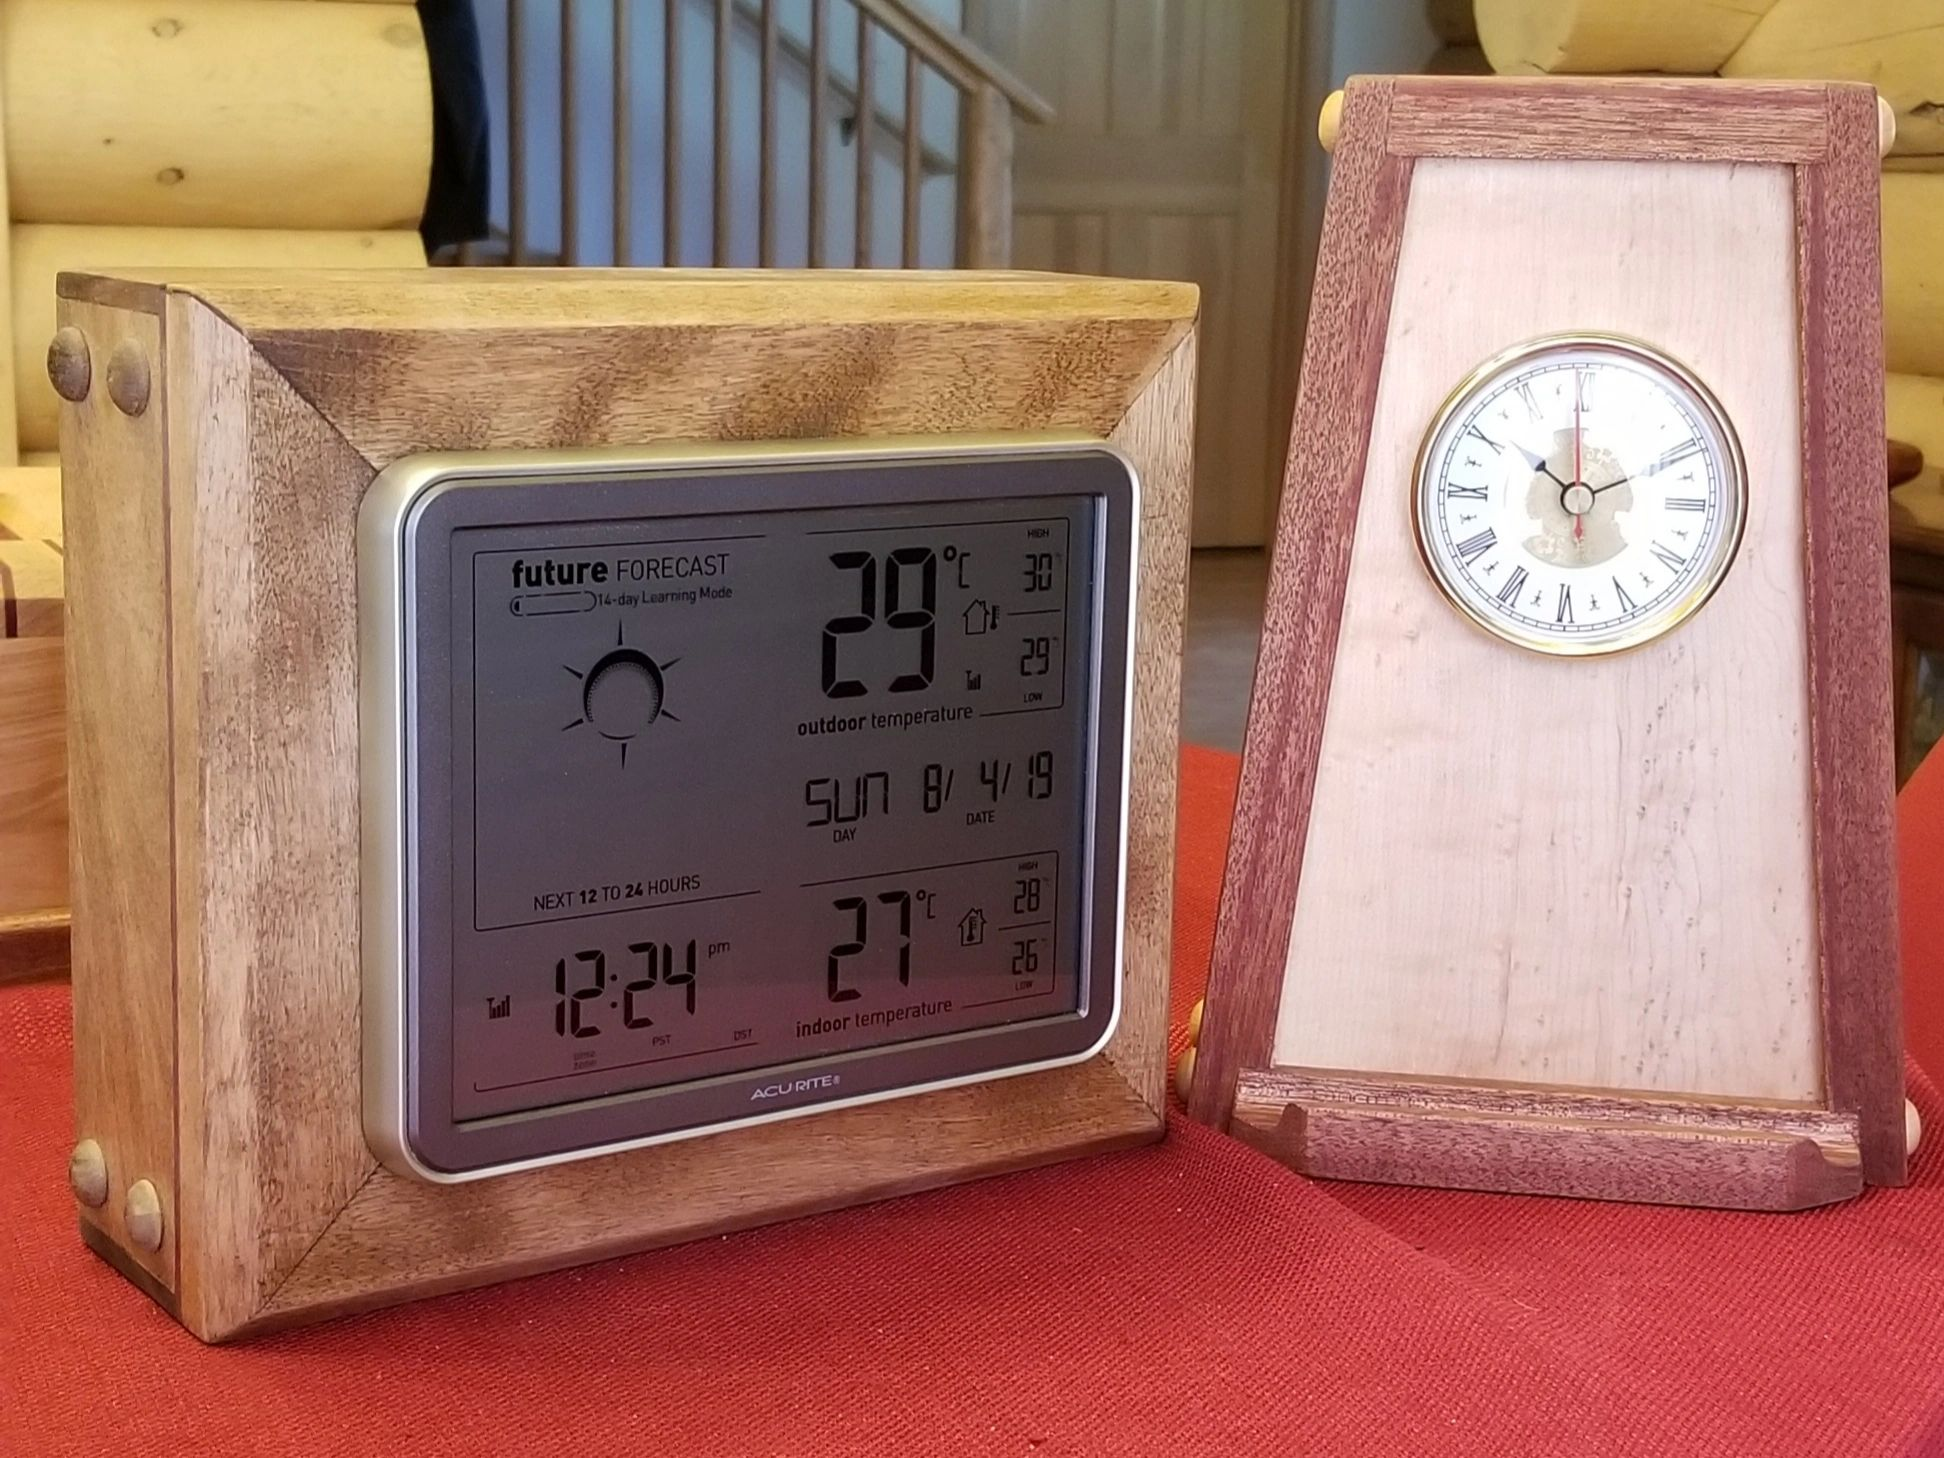 Weather Station & Clock featuring Concealed Compartments